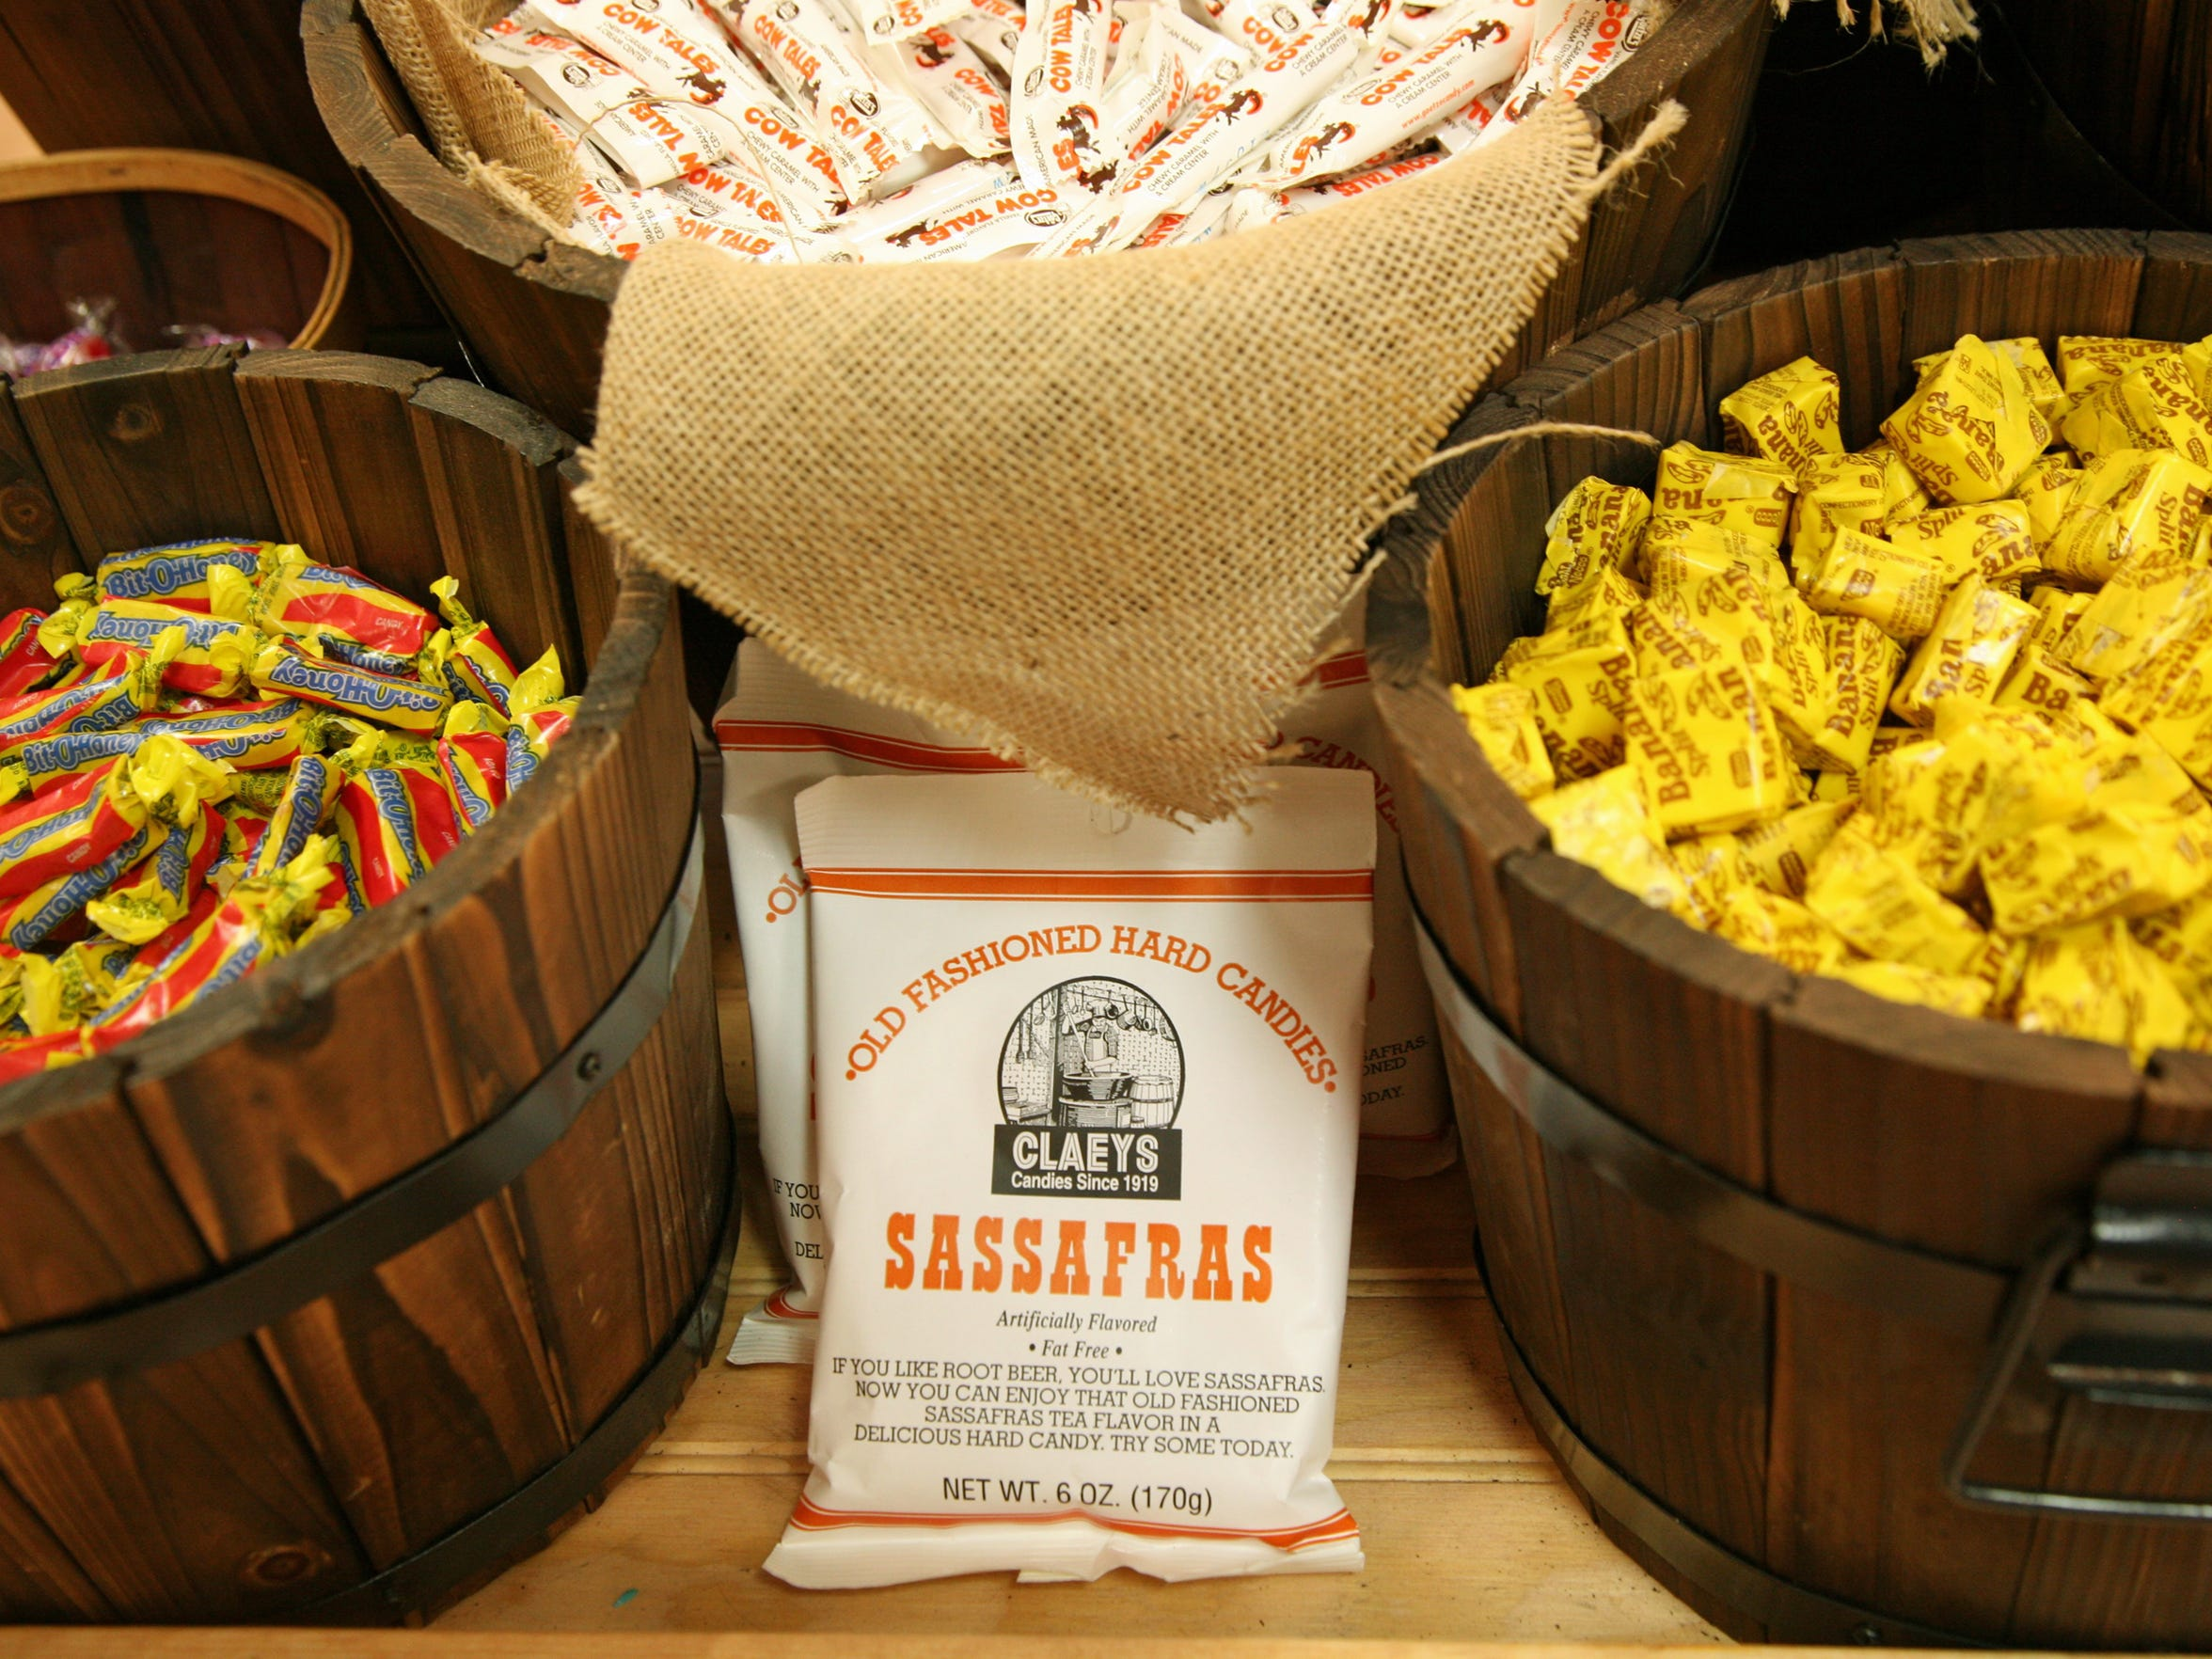 Burgess General Store in Pickens sells a variety of candy.